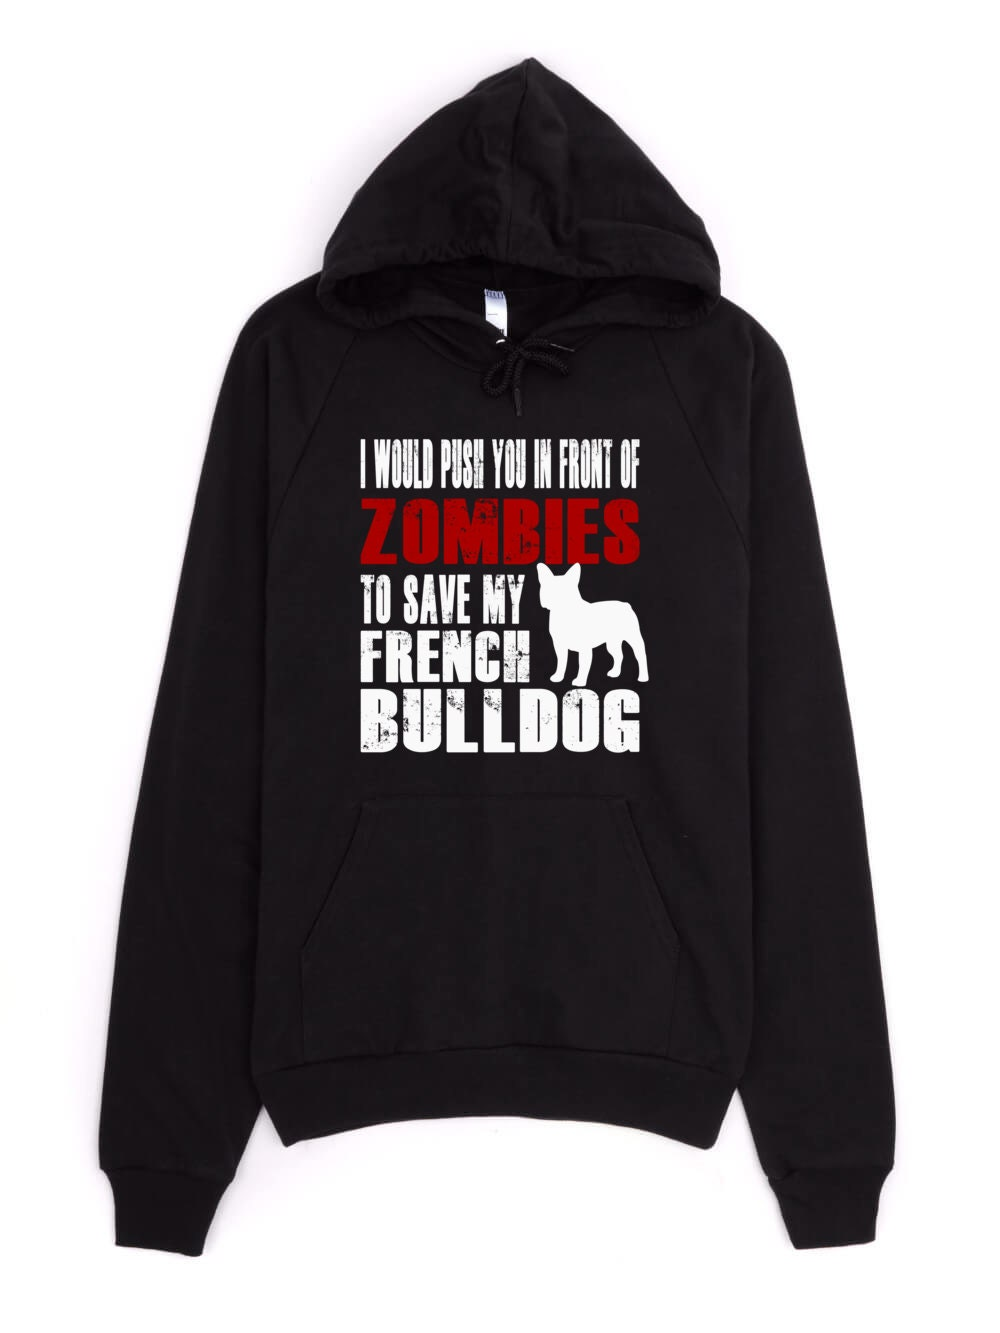 French Bulldog Sweatshirt - I Would Push You In Front Of Zombies To Save My French Bulldog - My Dog French Bulldog Hoodie